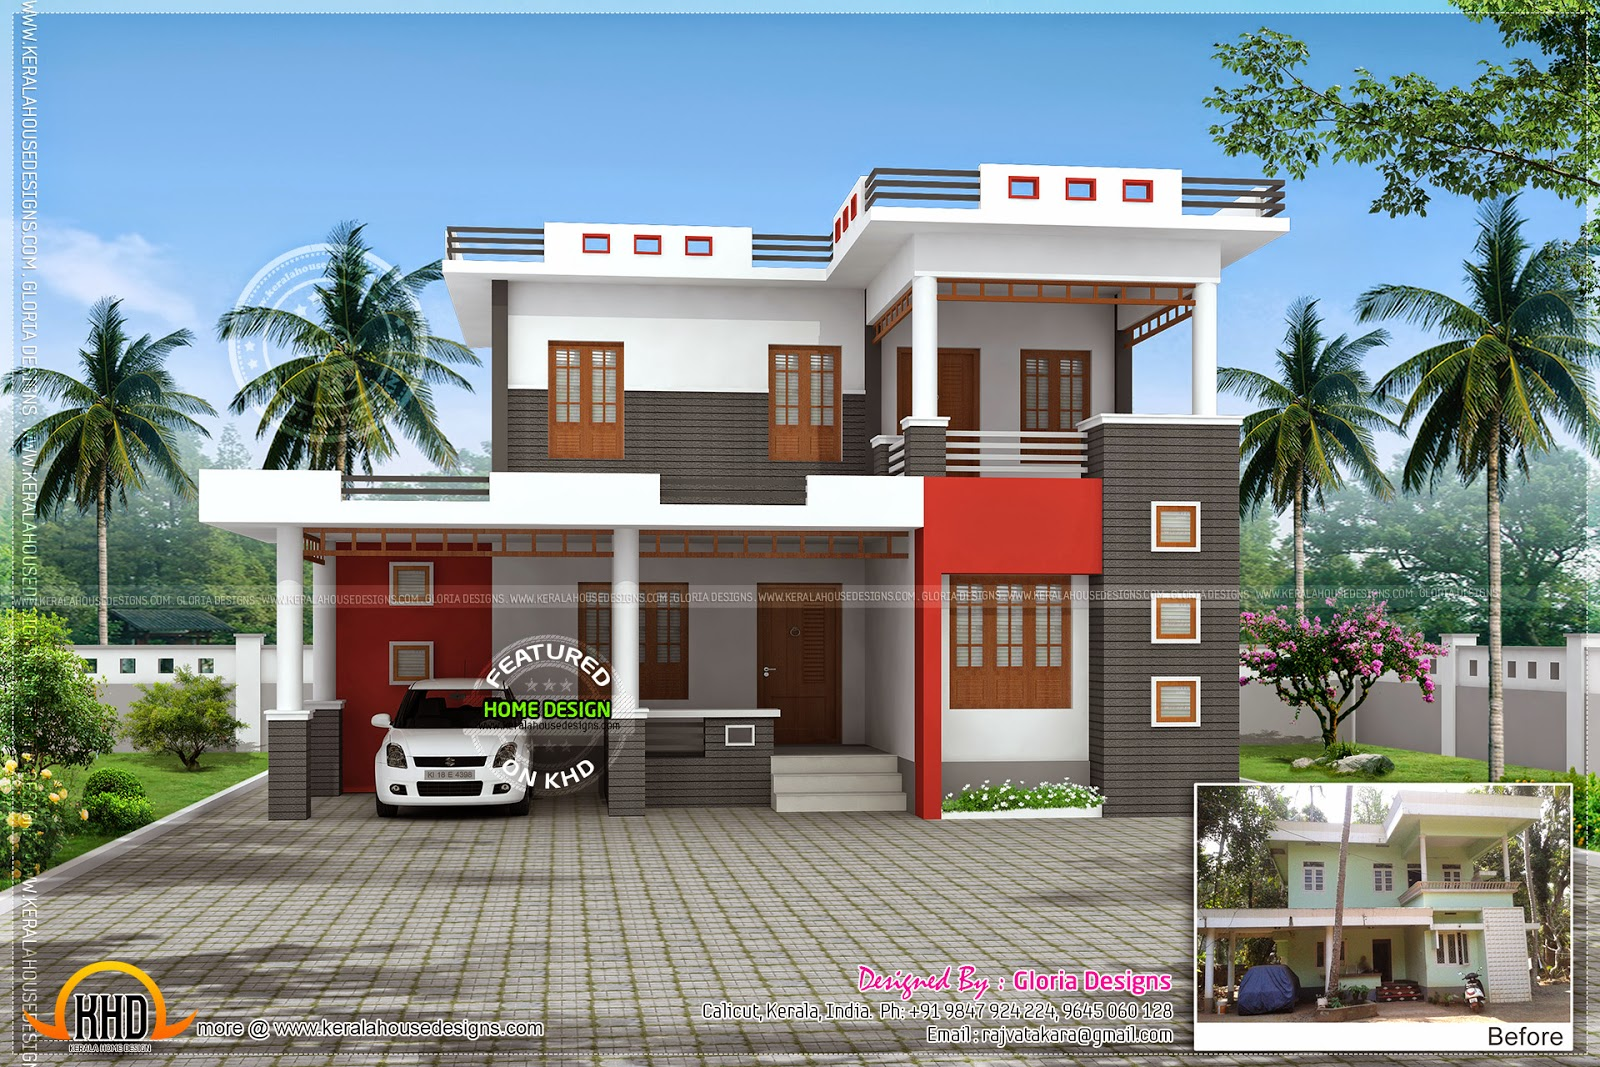 Renovation 3d Model For An Old House Kerala Home Design And Floor Plans